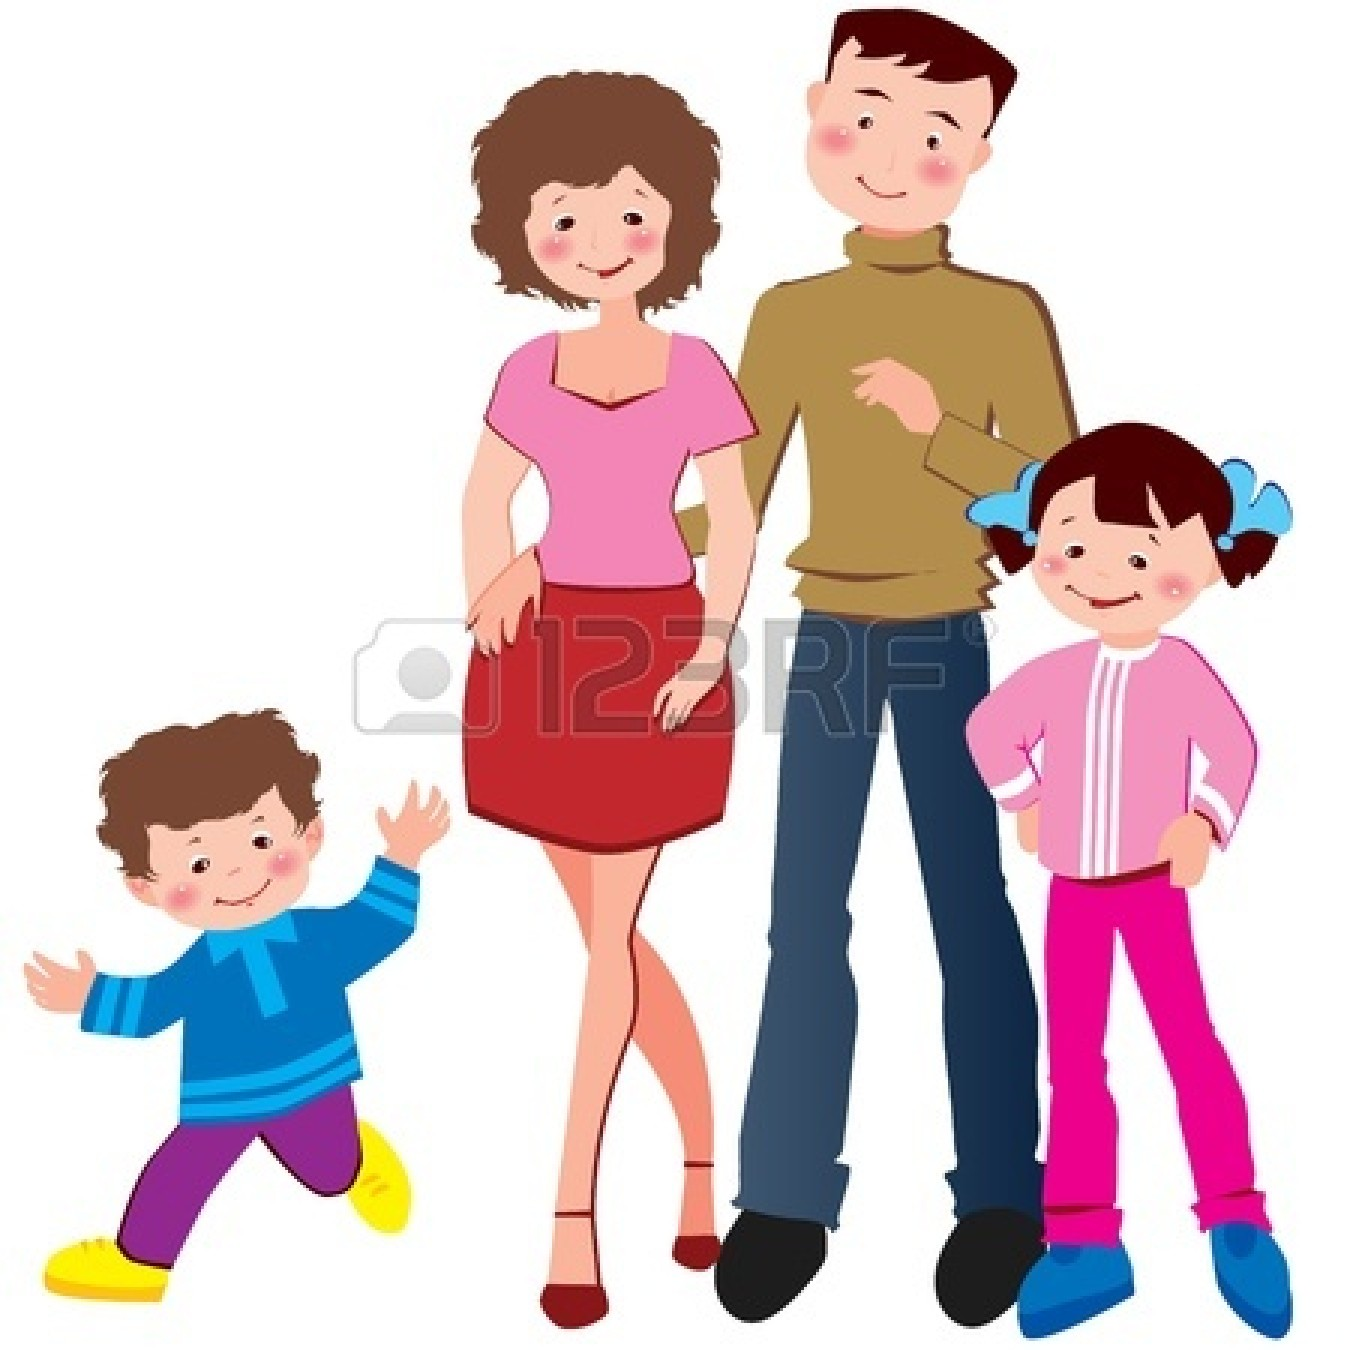 Nuclear family clipart freeuse stock Nuclear family clipart black and white 2 » Clipart Station freeuse stock